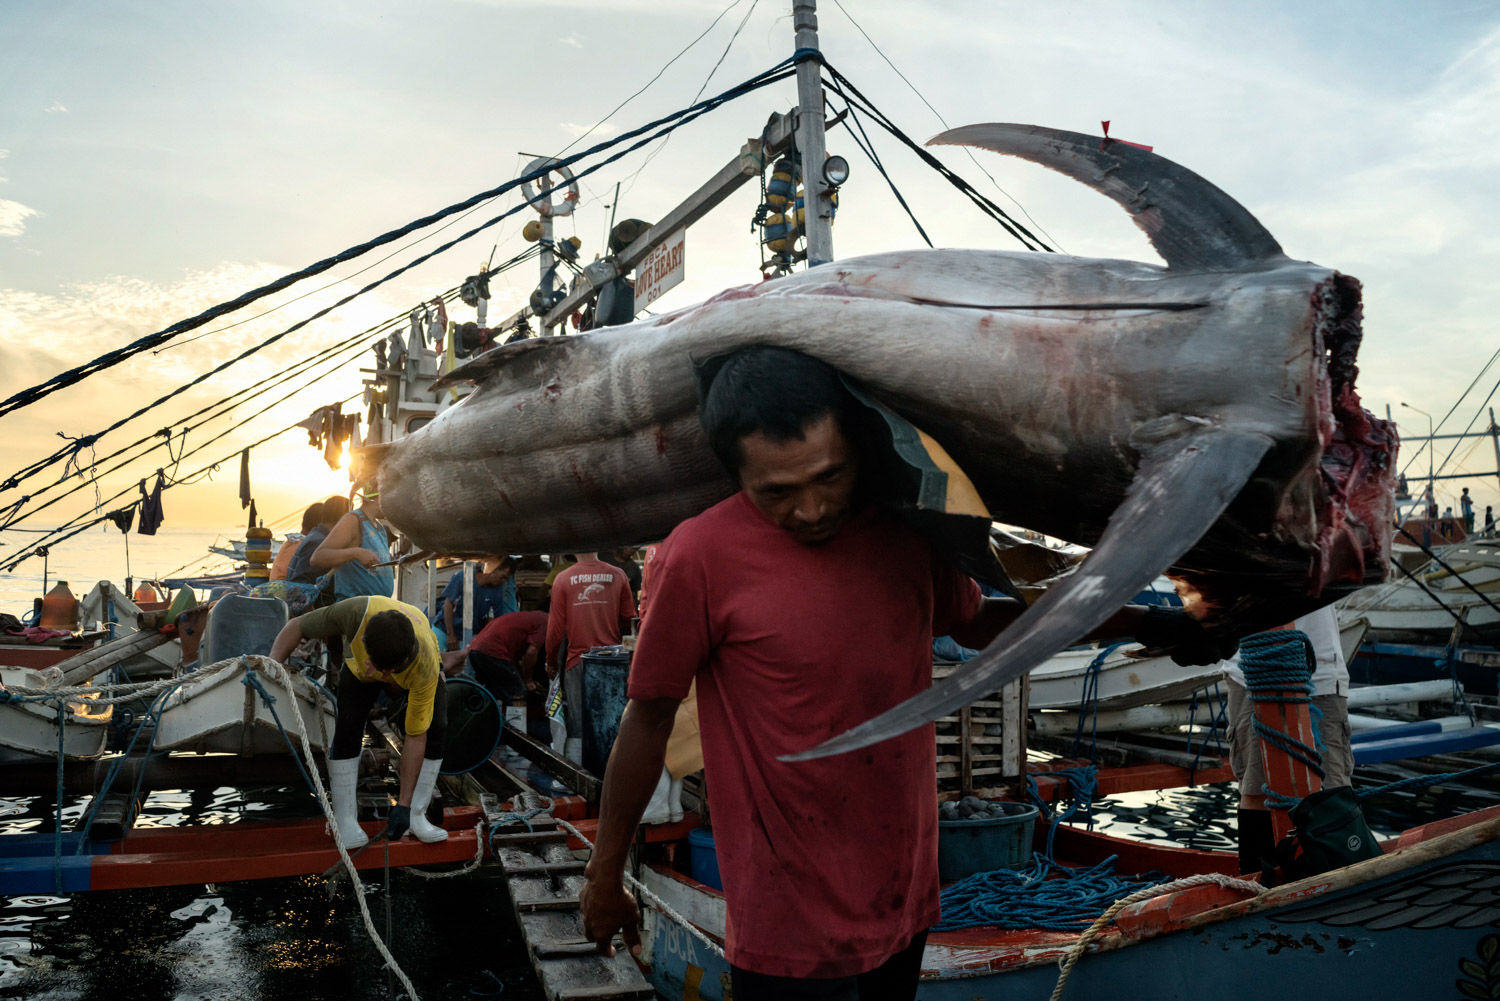 """Fisherman offload a marlin caught in the South China Sea,  at the General Santos Fish Port in General Santos, The Philippines on July 2nd, 2016. General Santos City is the largest producer of sashimi-grade tuna in the Philippines and is known as the """"Tuna Capital of the Philippines""""."""